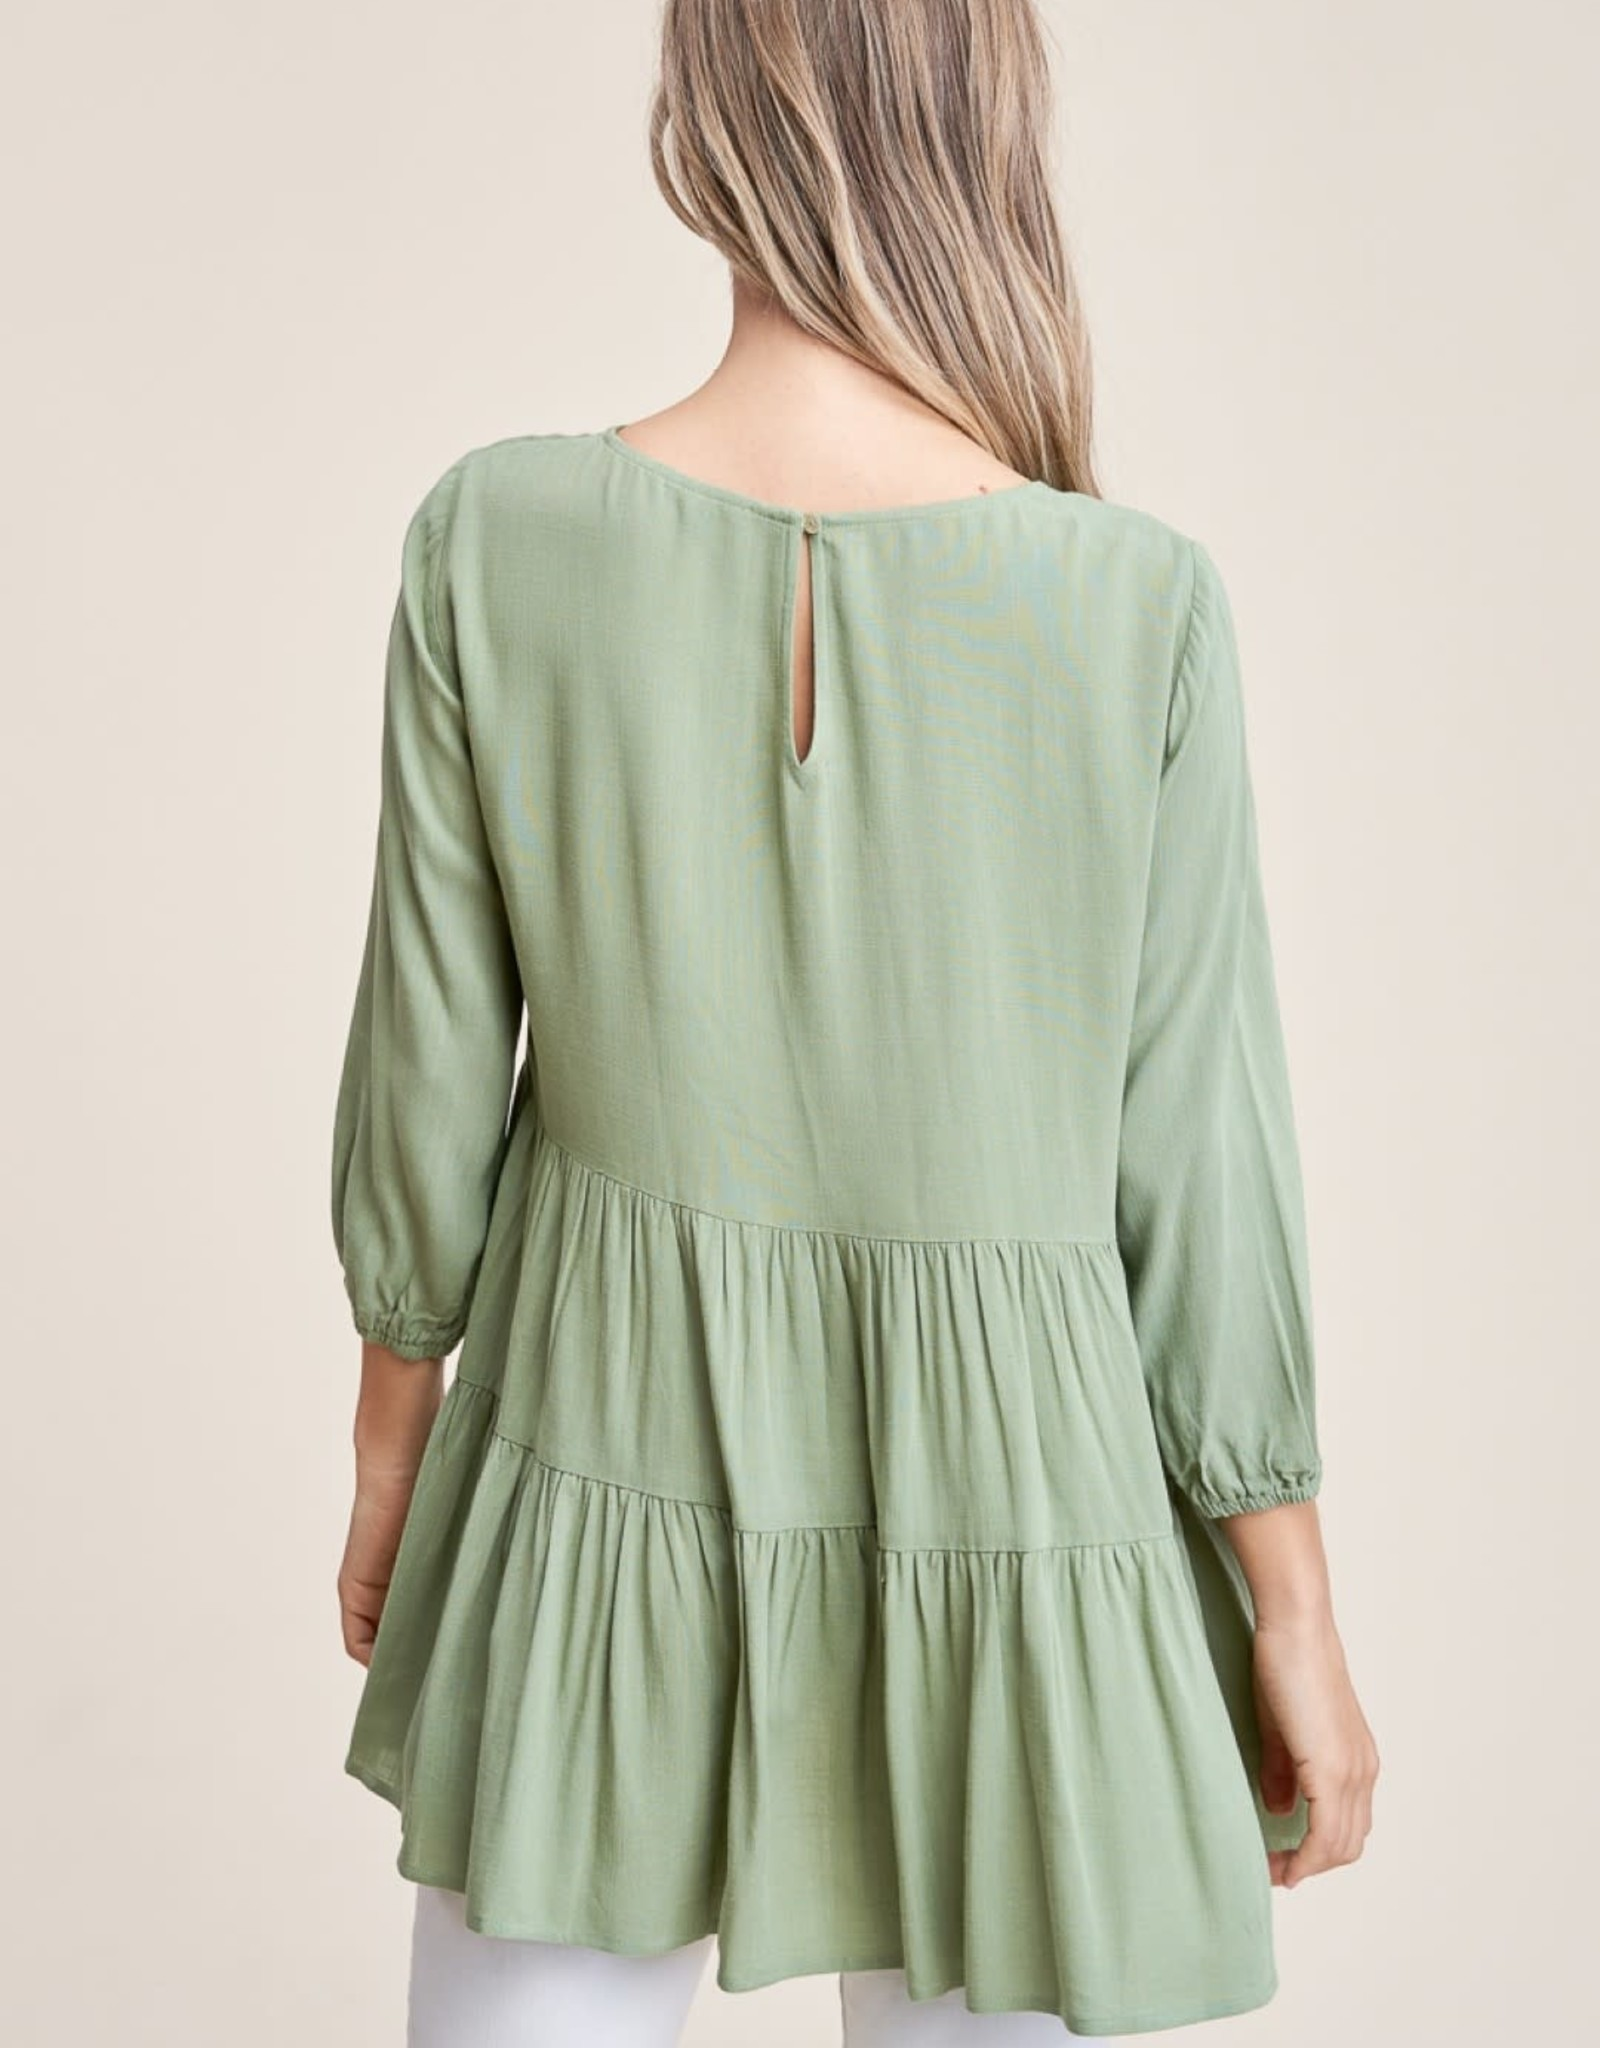 Top with Tiers and 3/4 Sleeves